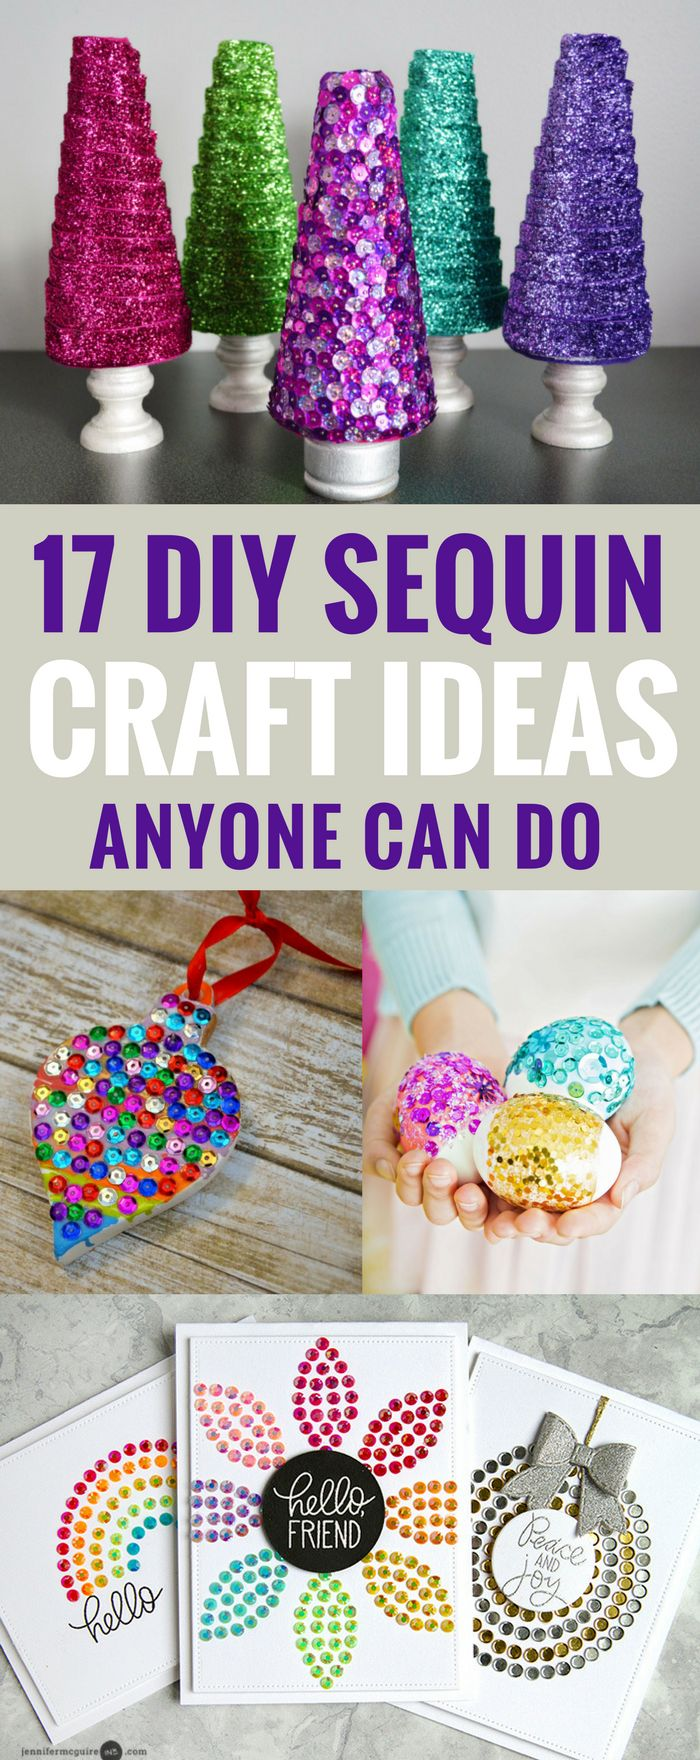 DIY Sequin Crafts Ideas Anyone Can Do, Sparkly Projects for Fashion, Arts, or Home Decor, Kids can Do too!